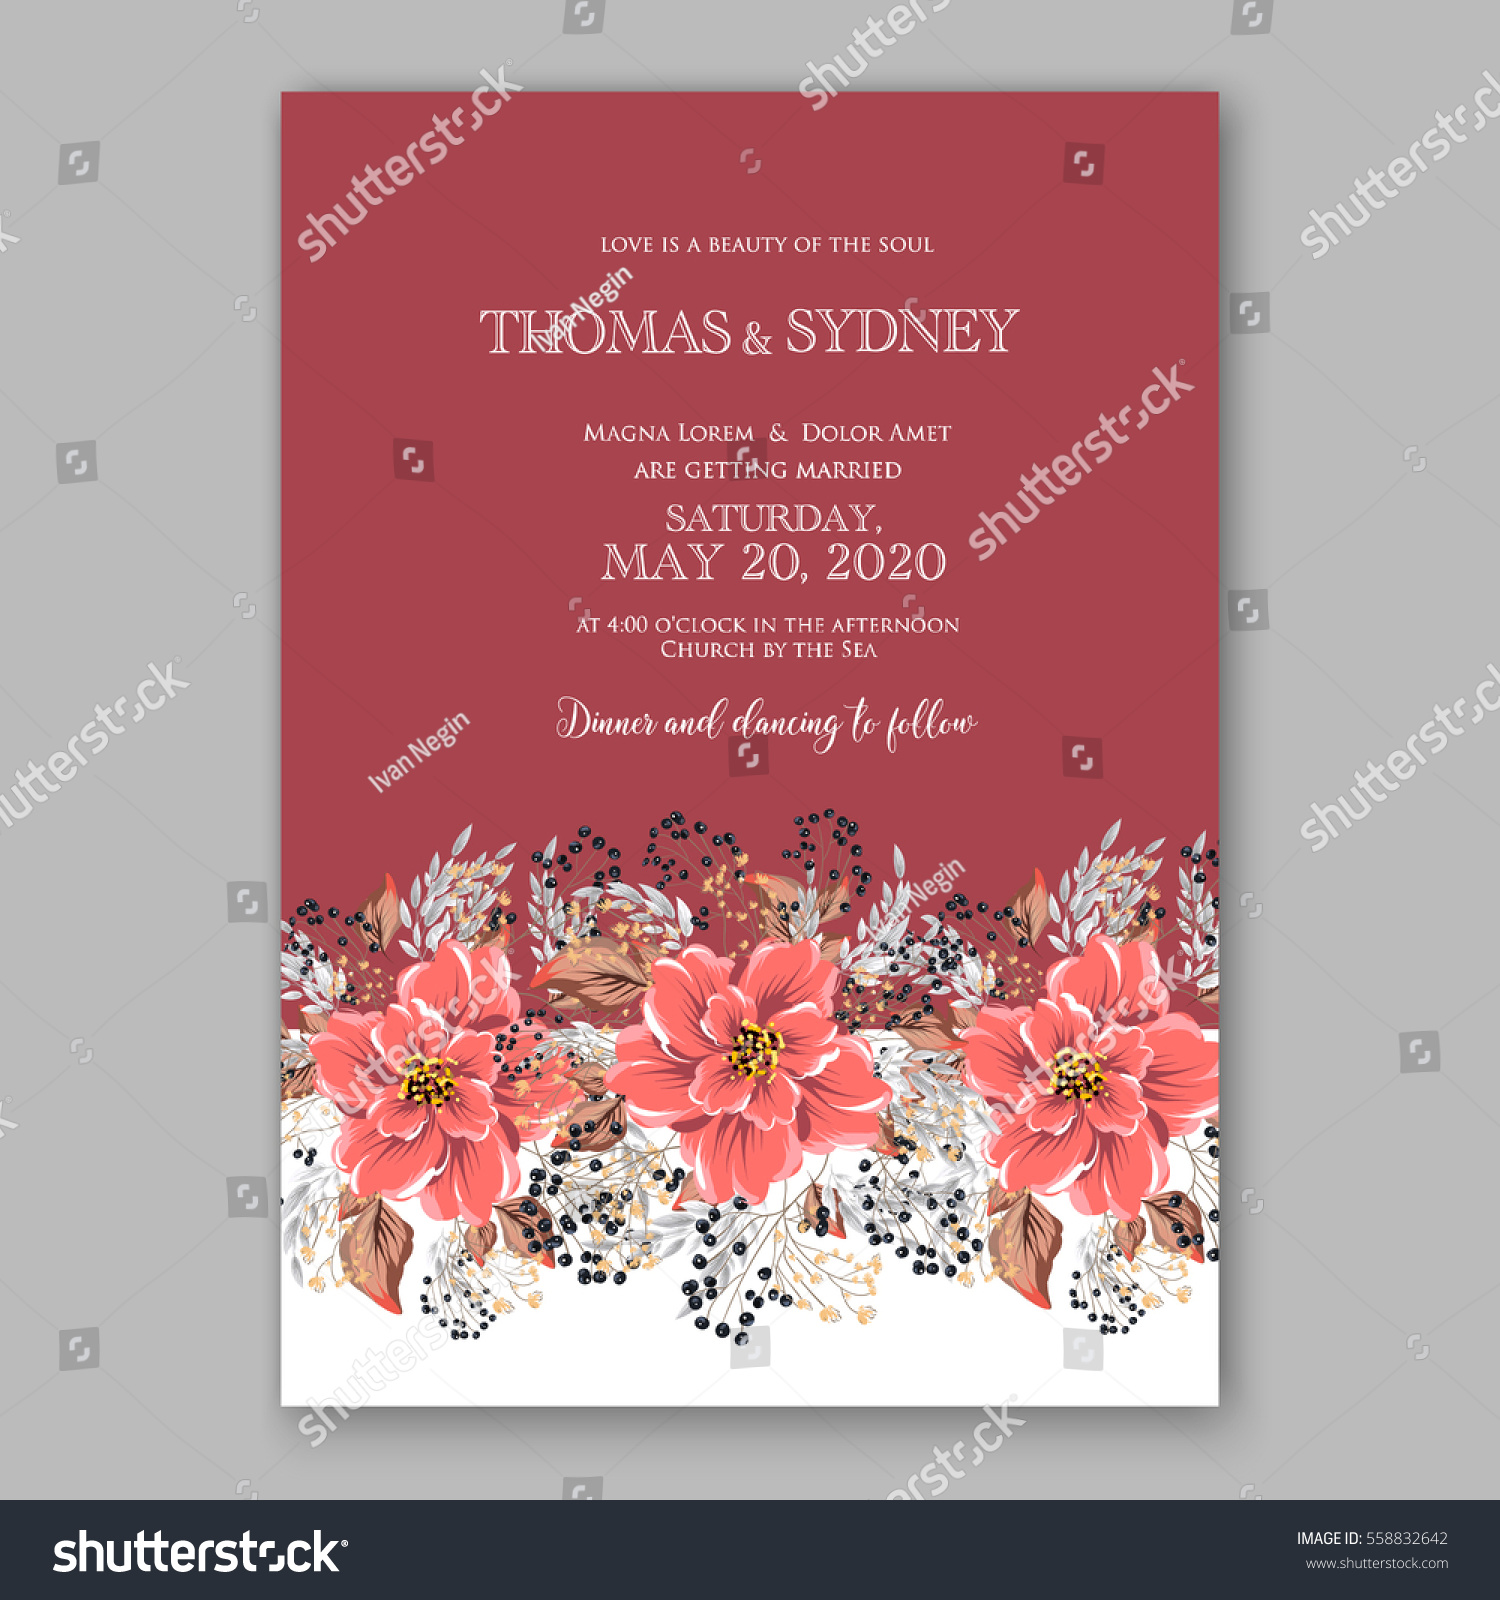 Wedding Invitation Floral Bridal Wreath Pink Stock Vector 558832642 ...